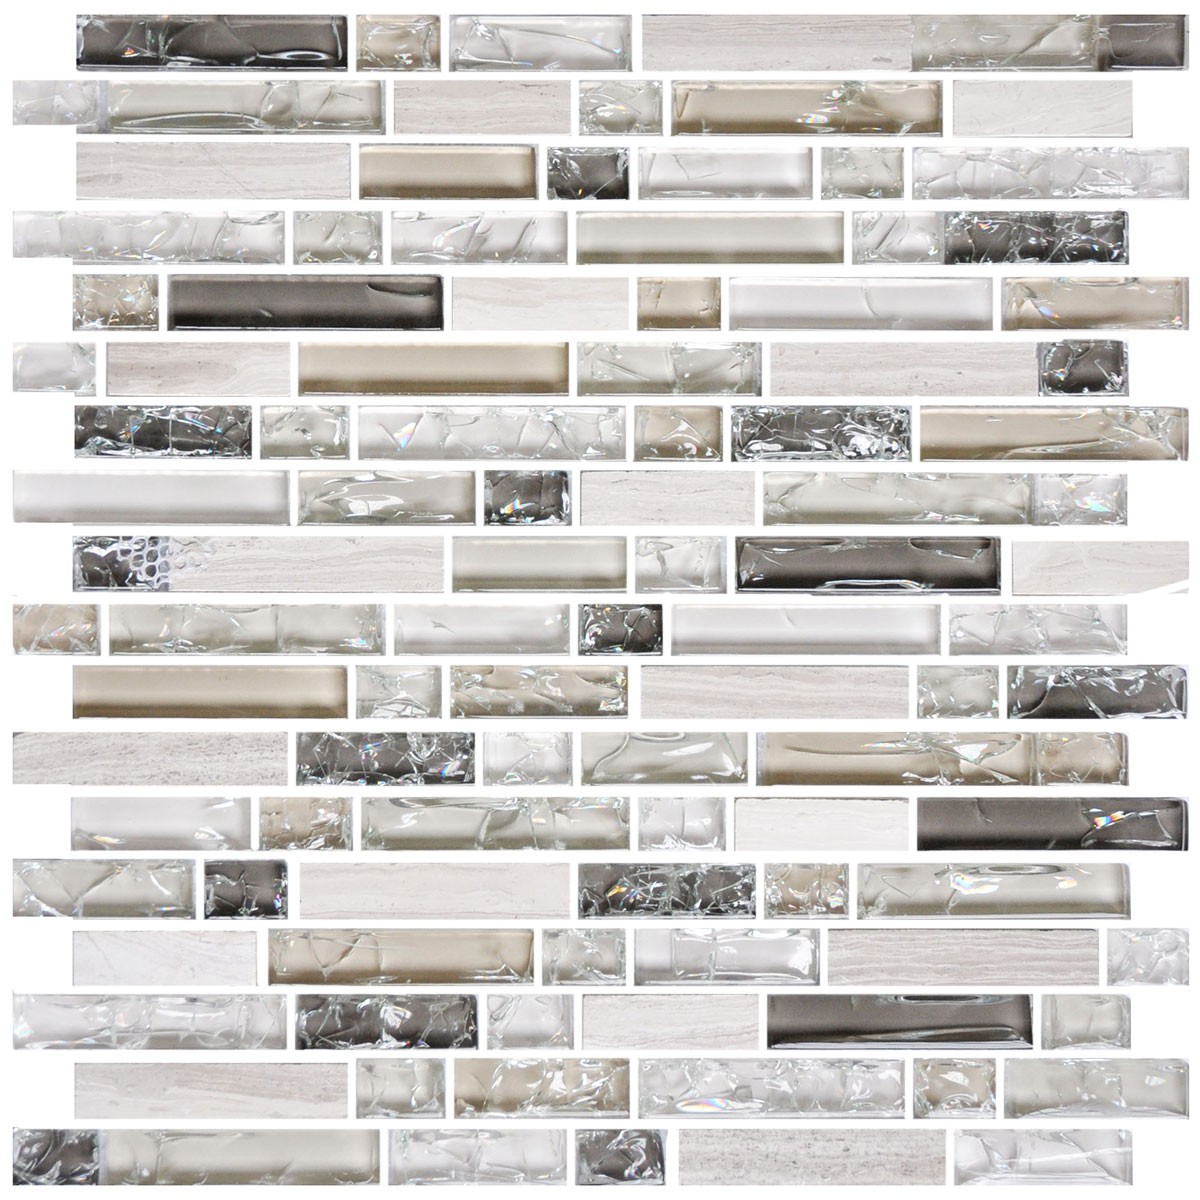 8mm Thickness Electroplated Glass Mosaic Tile - 12 in. x 12 in. (DK-RS234873A4)